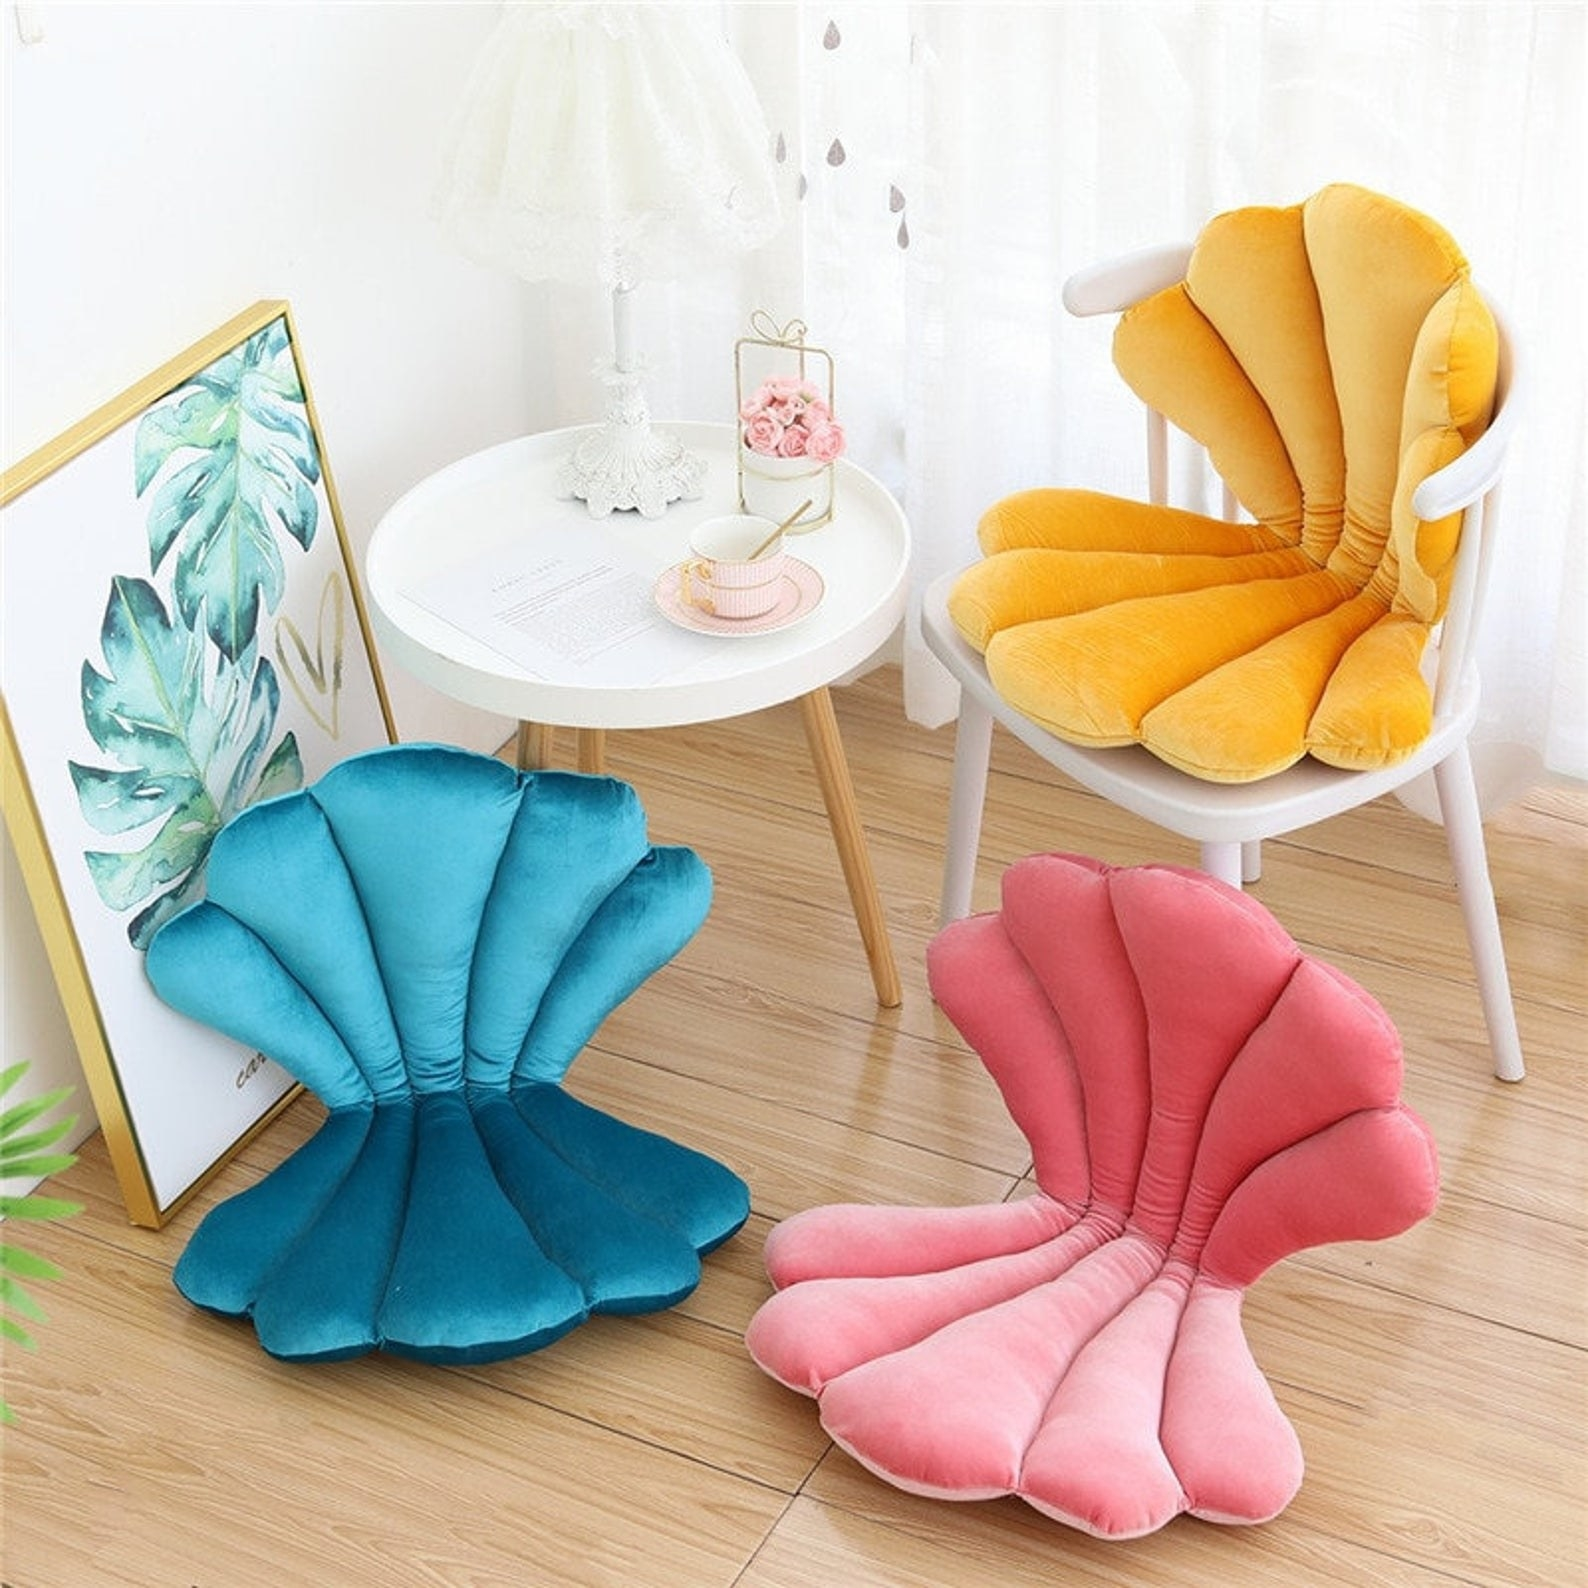 A velvet pillow that's opened like a clam-style seashell so it provides back and butt support. It's in three colors: blue, pink, and yellow